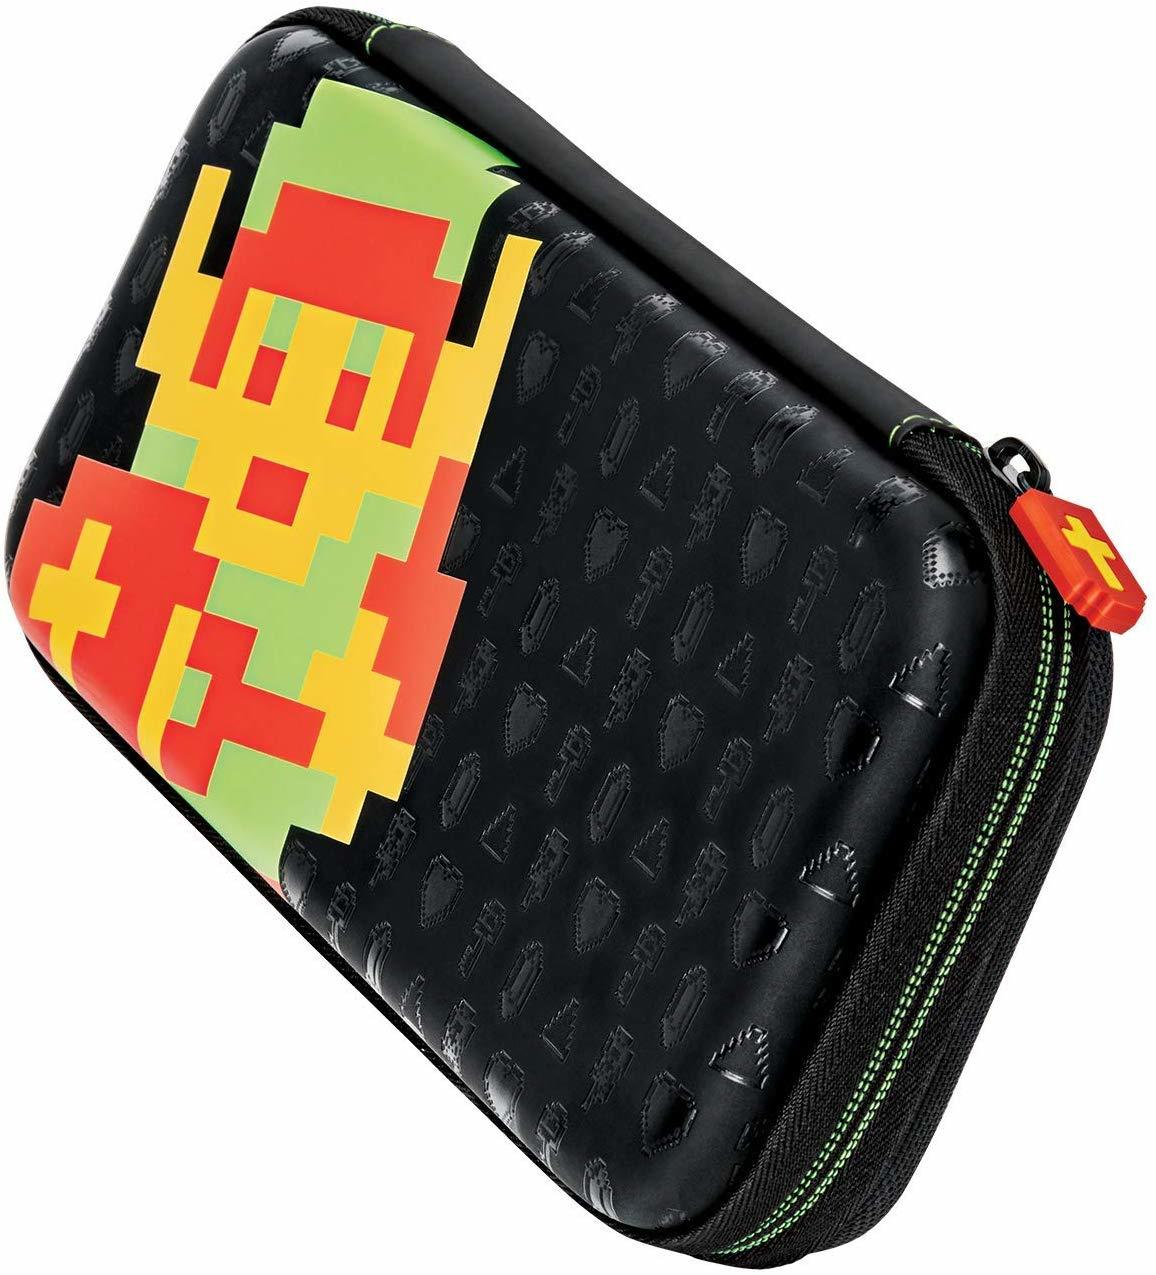 Nintendo Switch Slim Travel Case Zelda Retro Edition - Nintendo Switch